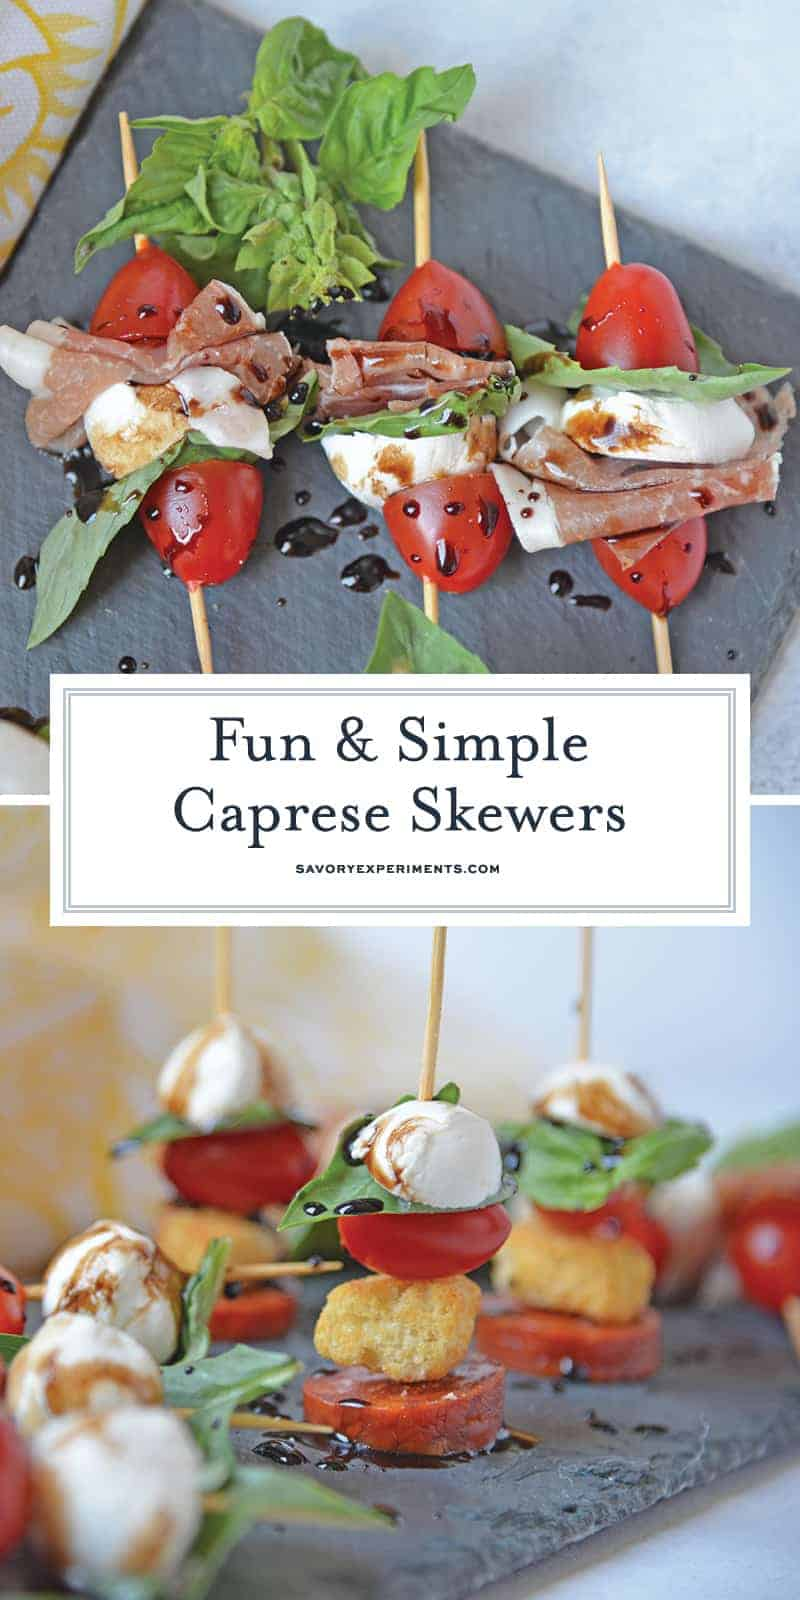 Caprese Skewers are the perfect party appetizer made with fresh mozzarella, basil, tomatoes, garlicky croutons, and zesty pepperoni, all drizzled with a tangy balsamic reduction sauce! #capresesalad #capreseappetizer www.savoryexperiments.com